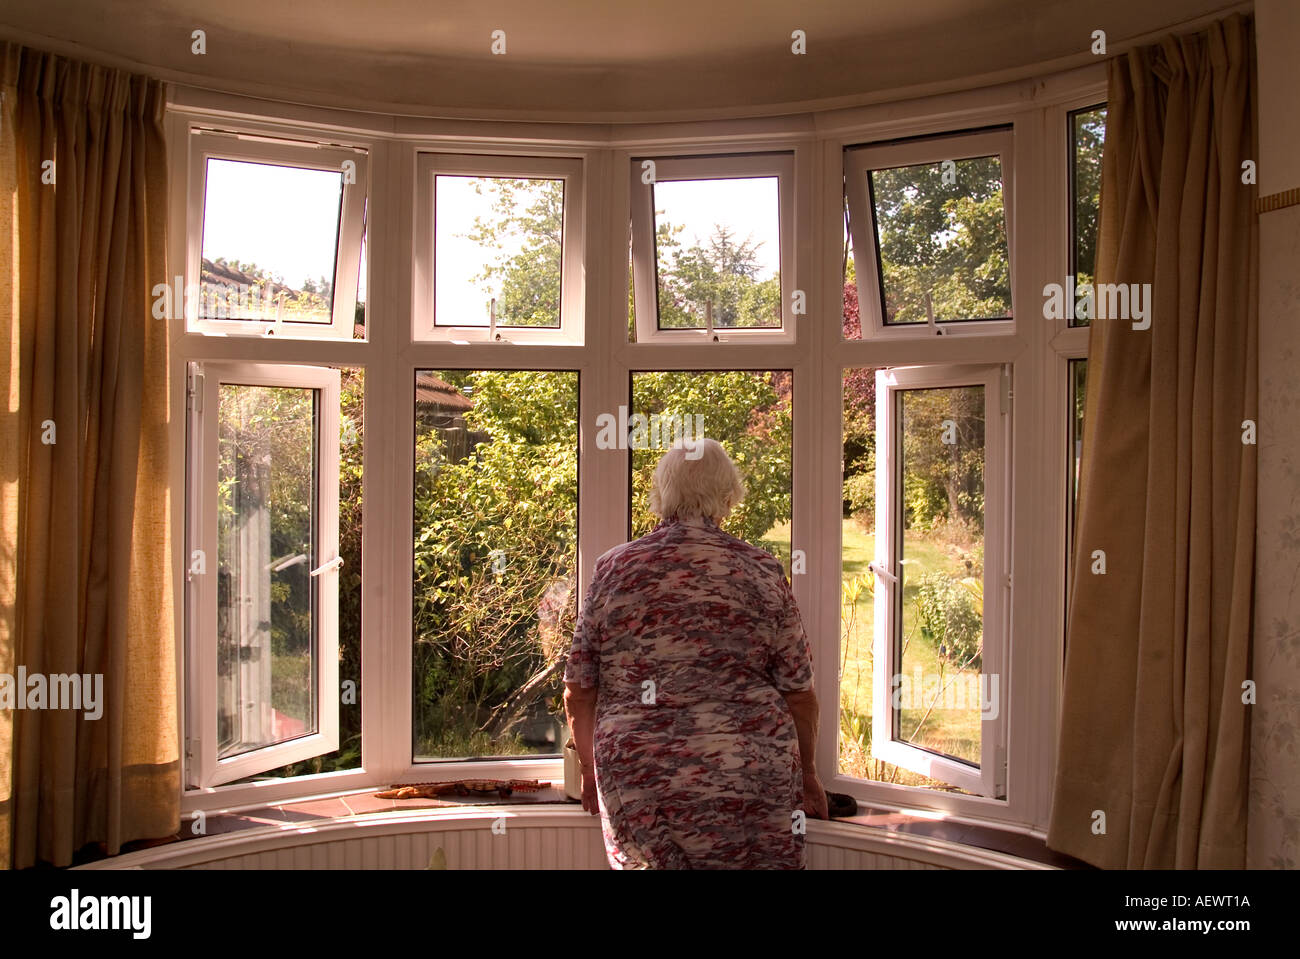 81 year old elderly woman looking out of her front room window, London, UK. Model Released image (MR). Stock Photo